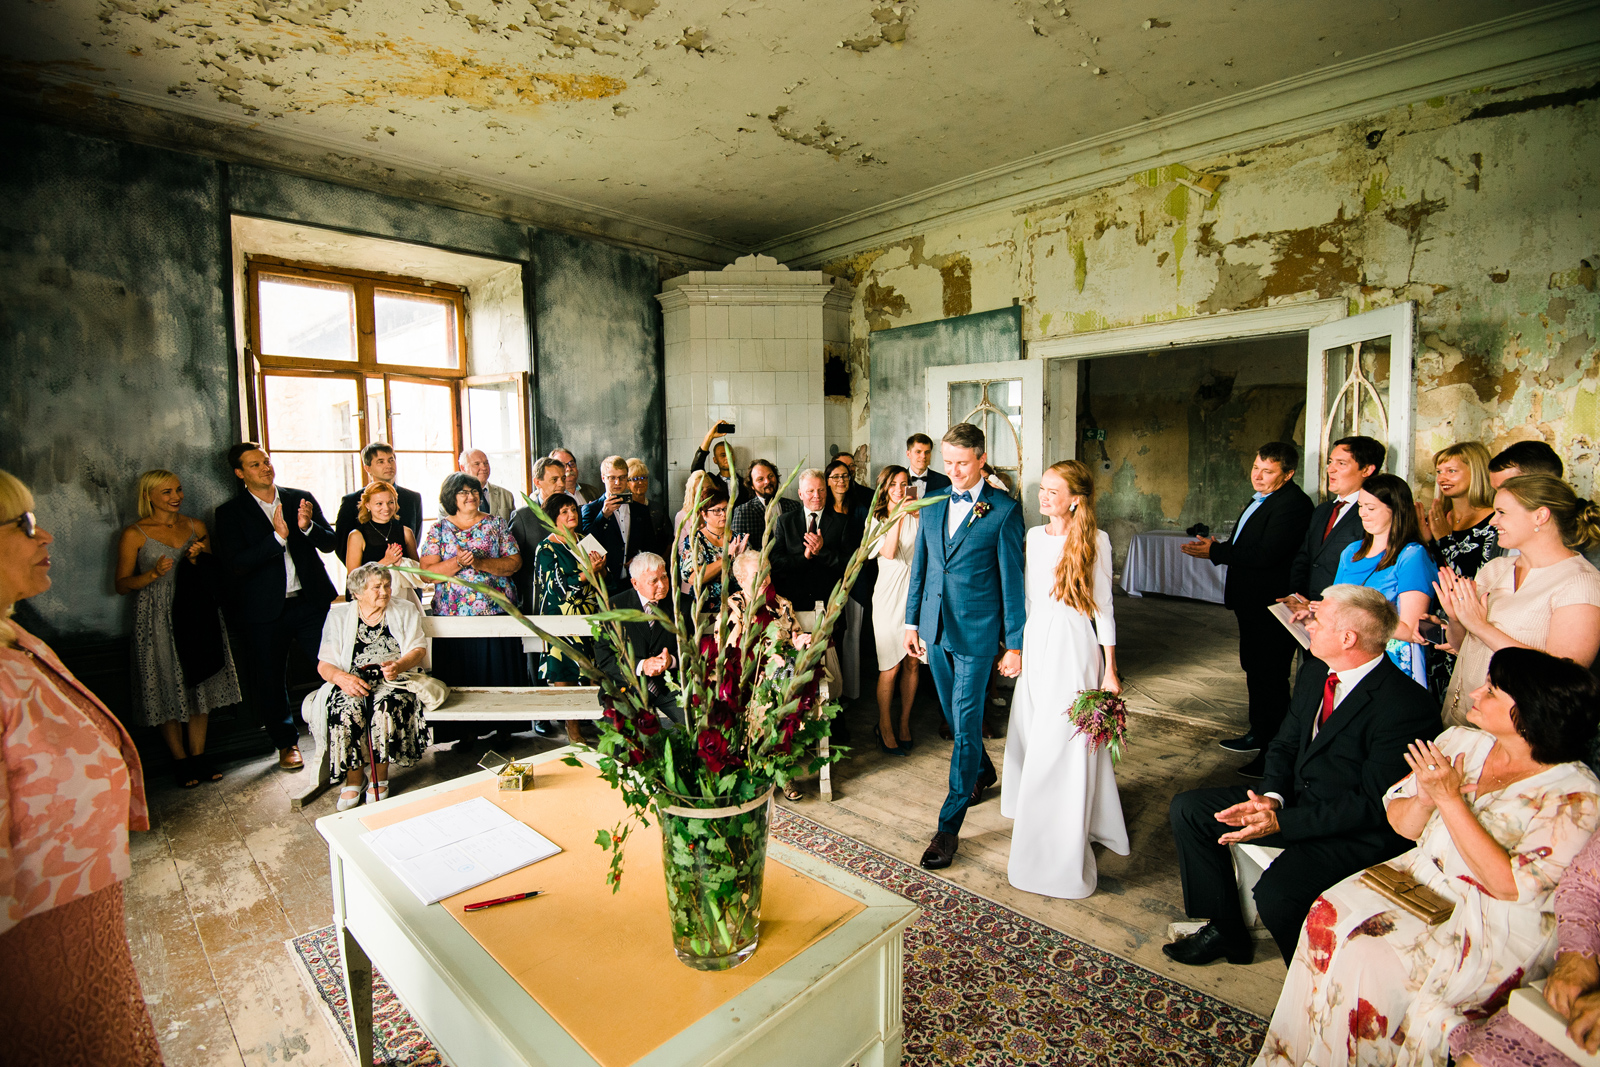 Kolga_manor_mois_pulm_wedding_diane_heigo_mait_juriado